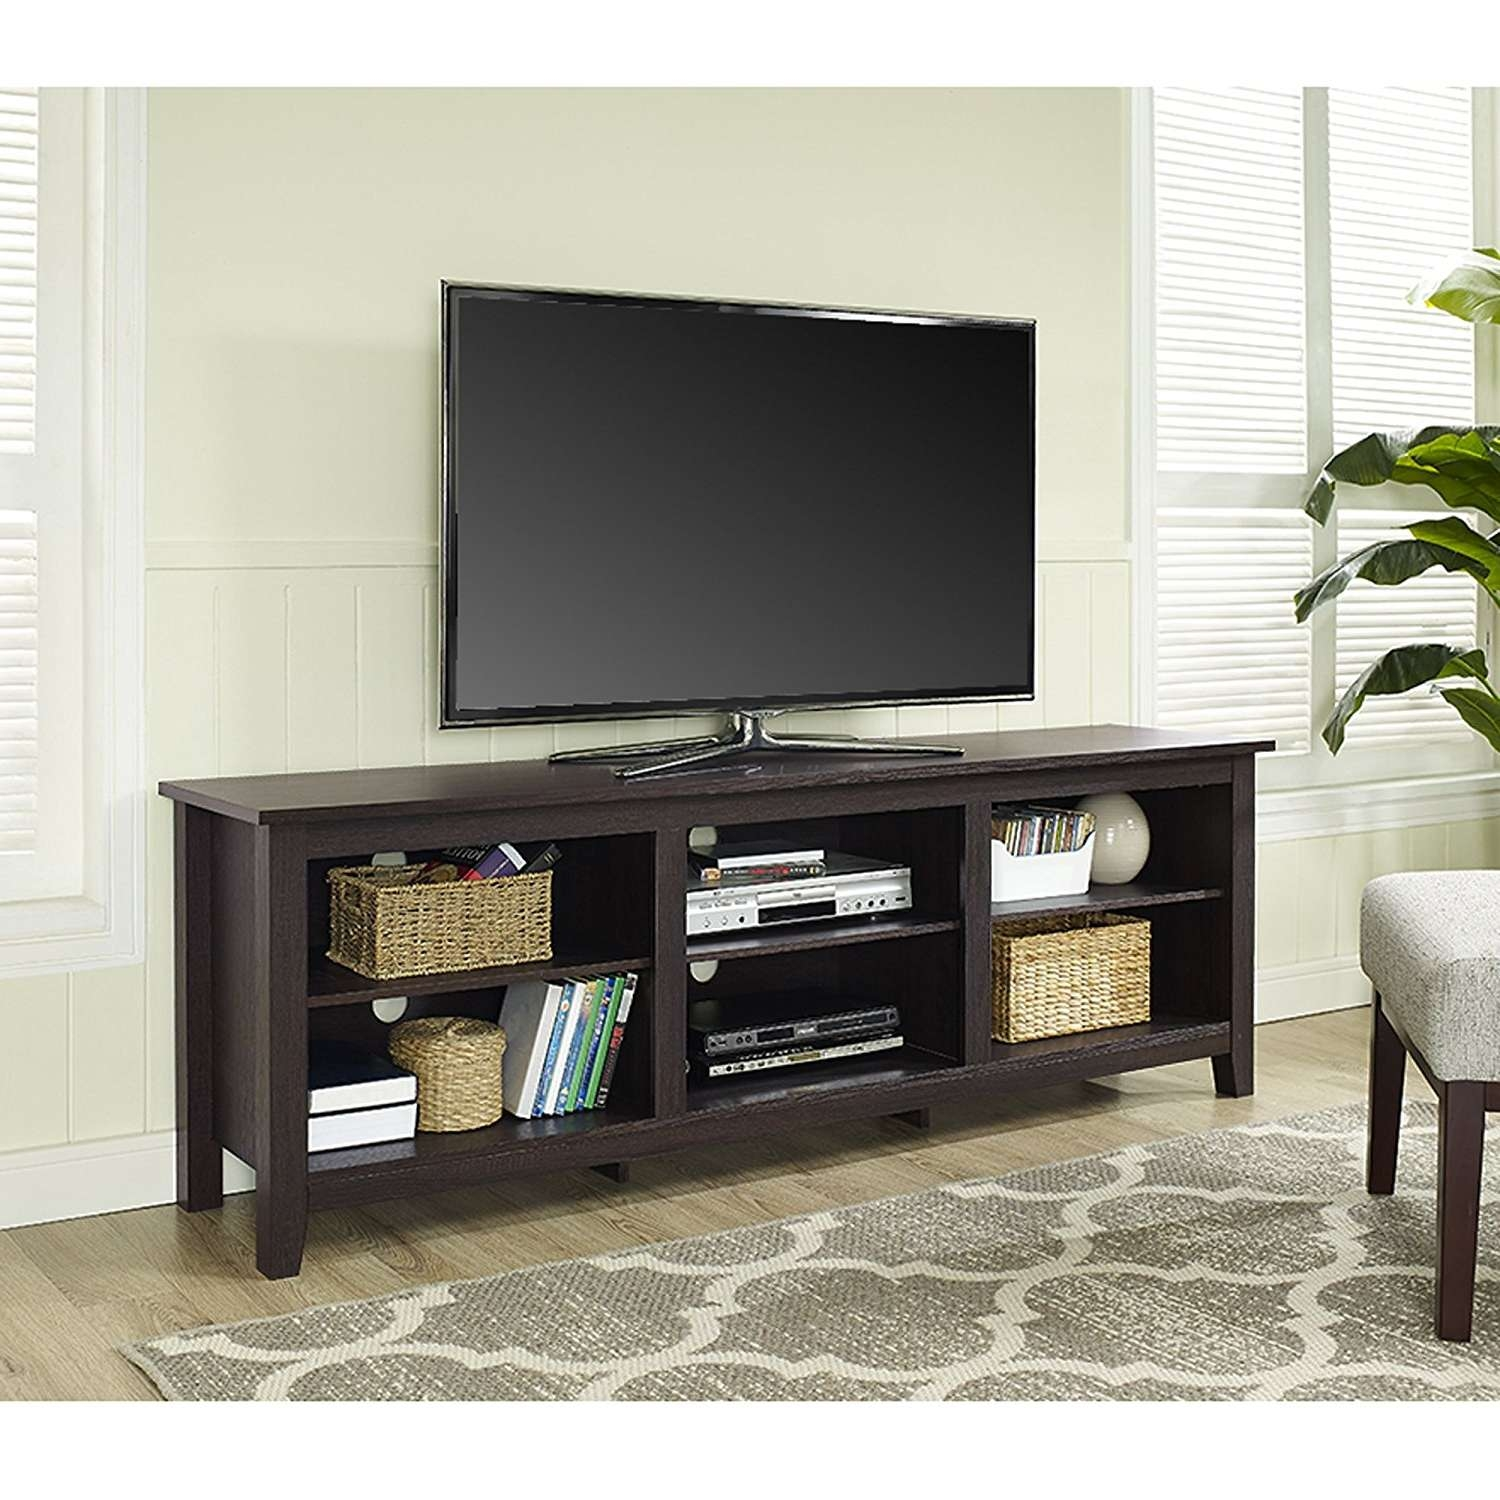 Caddy Corner Tv Stand Inside Tv Stands 38 Inches Wide (View 5 of 15)